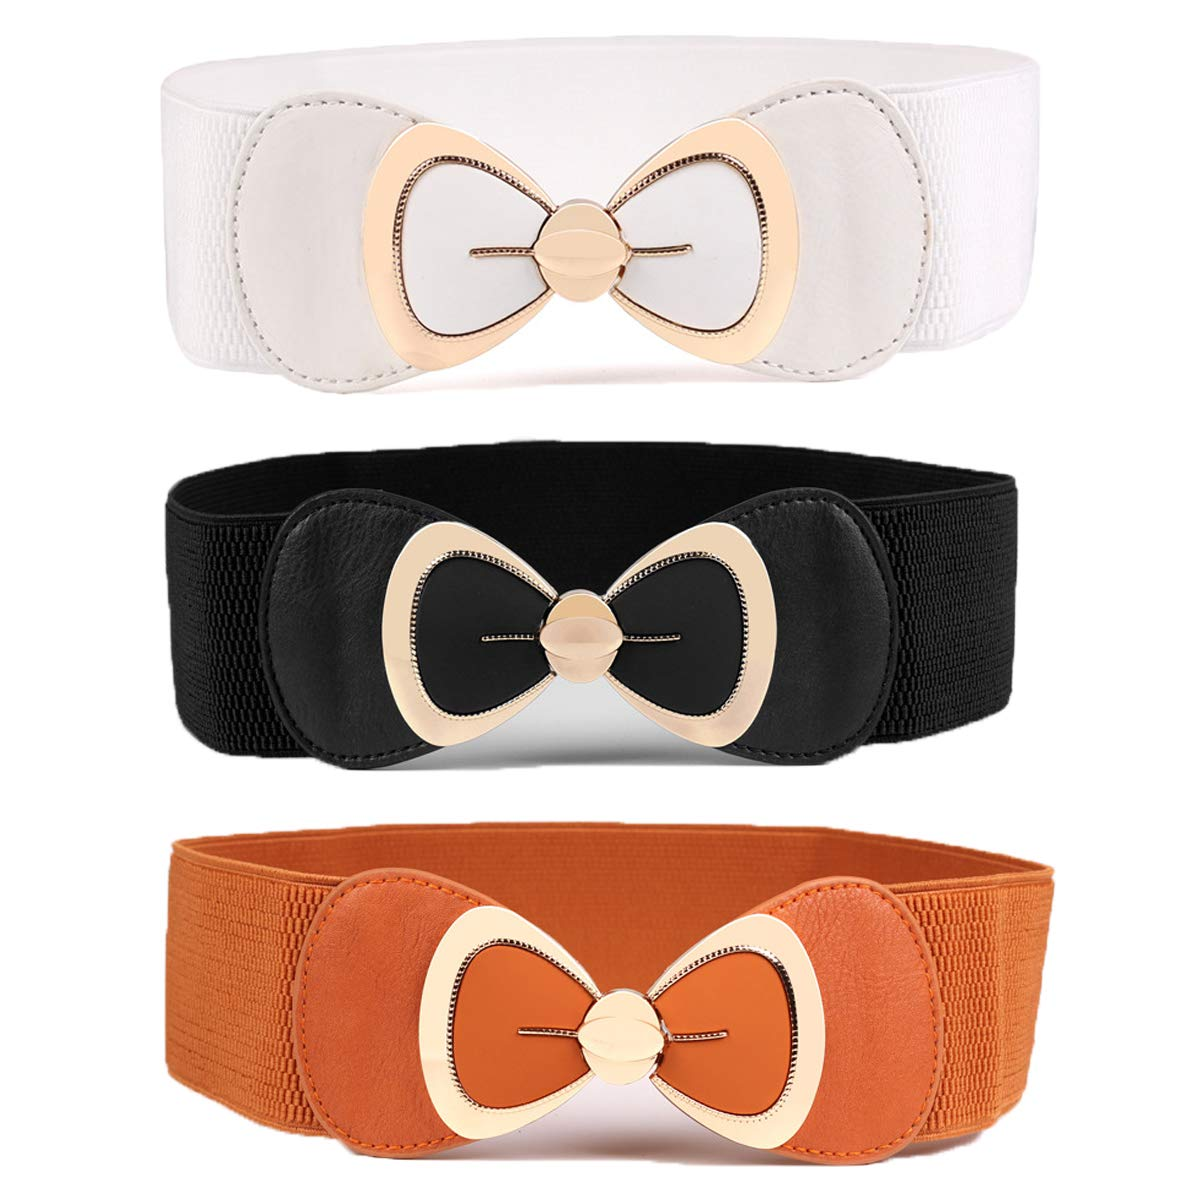 Womtop 3 Packs Women Waist Belts Ladies Metal Bow Clasp Buckle Stretchy Belt Faux Leather Elastic Waistband Dress Belt For Women (A(Black+White+Camel), Free)